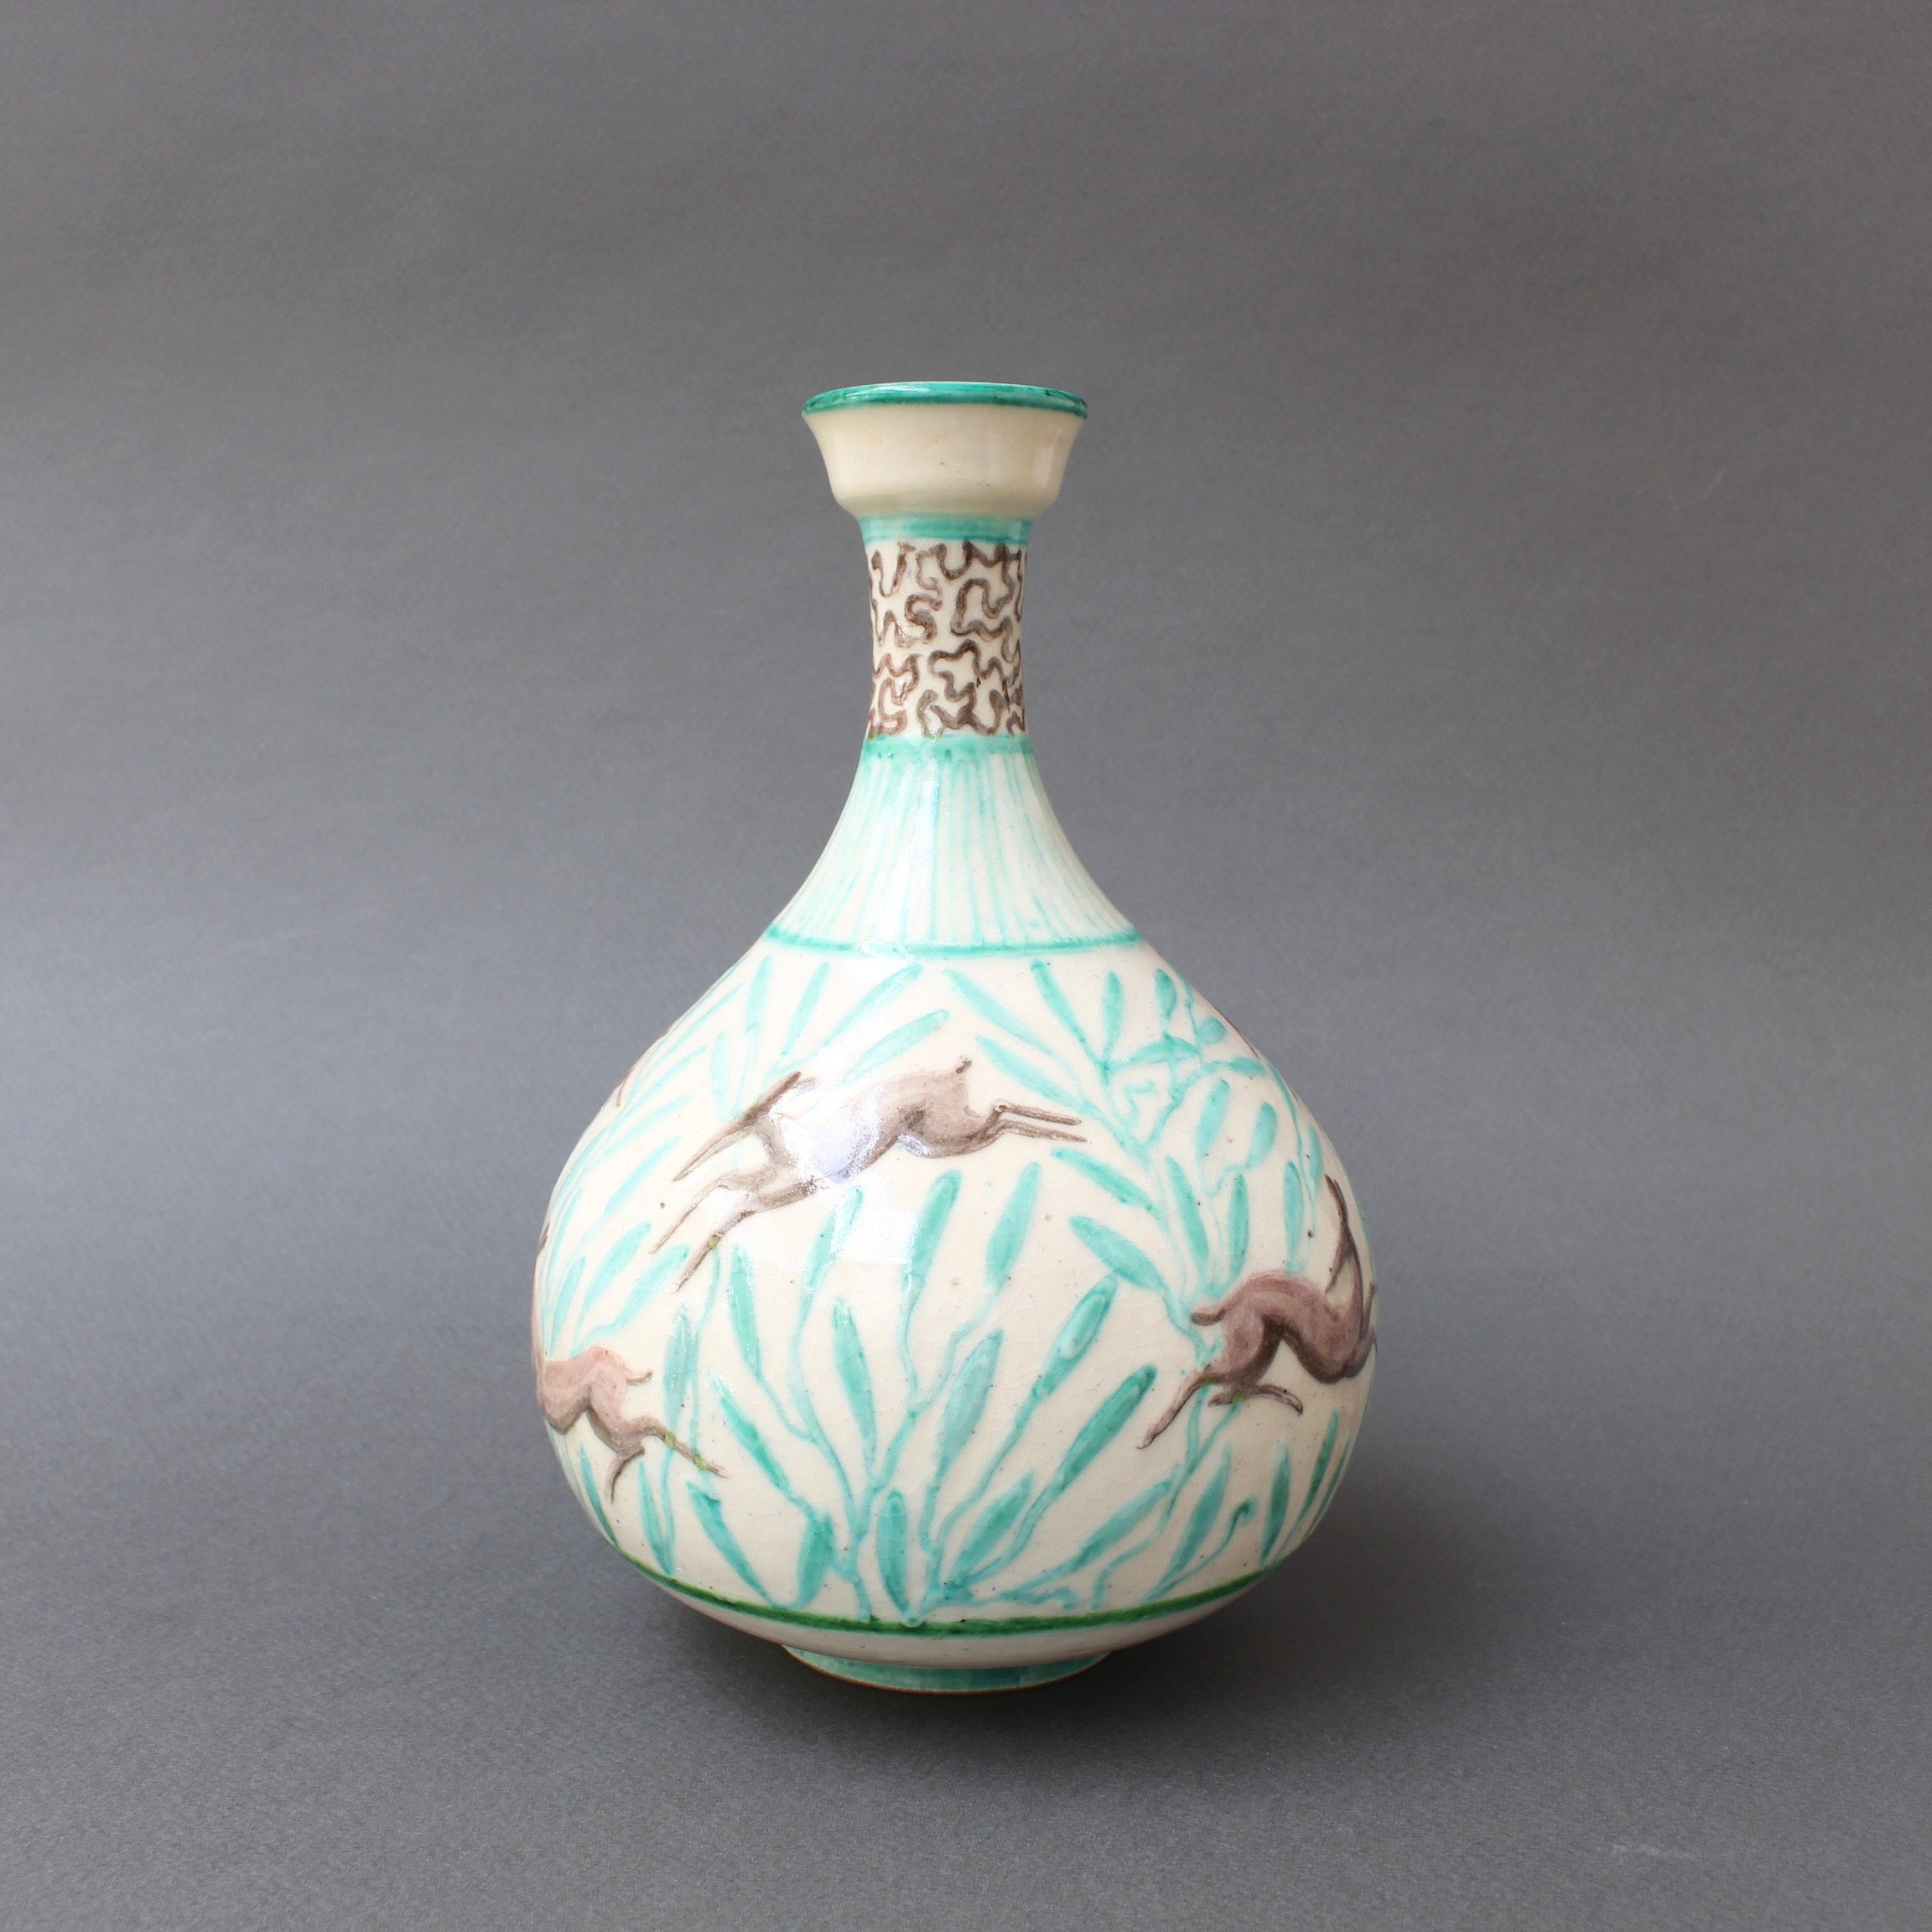 Vintage Ceramic Flower Vase by Jean Mayodon (circa 1960s)